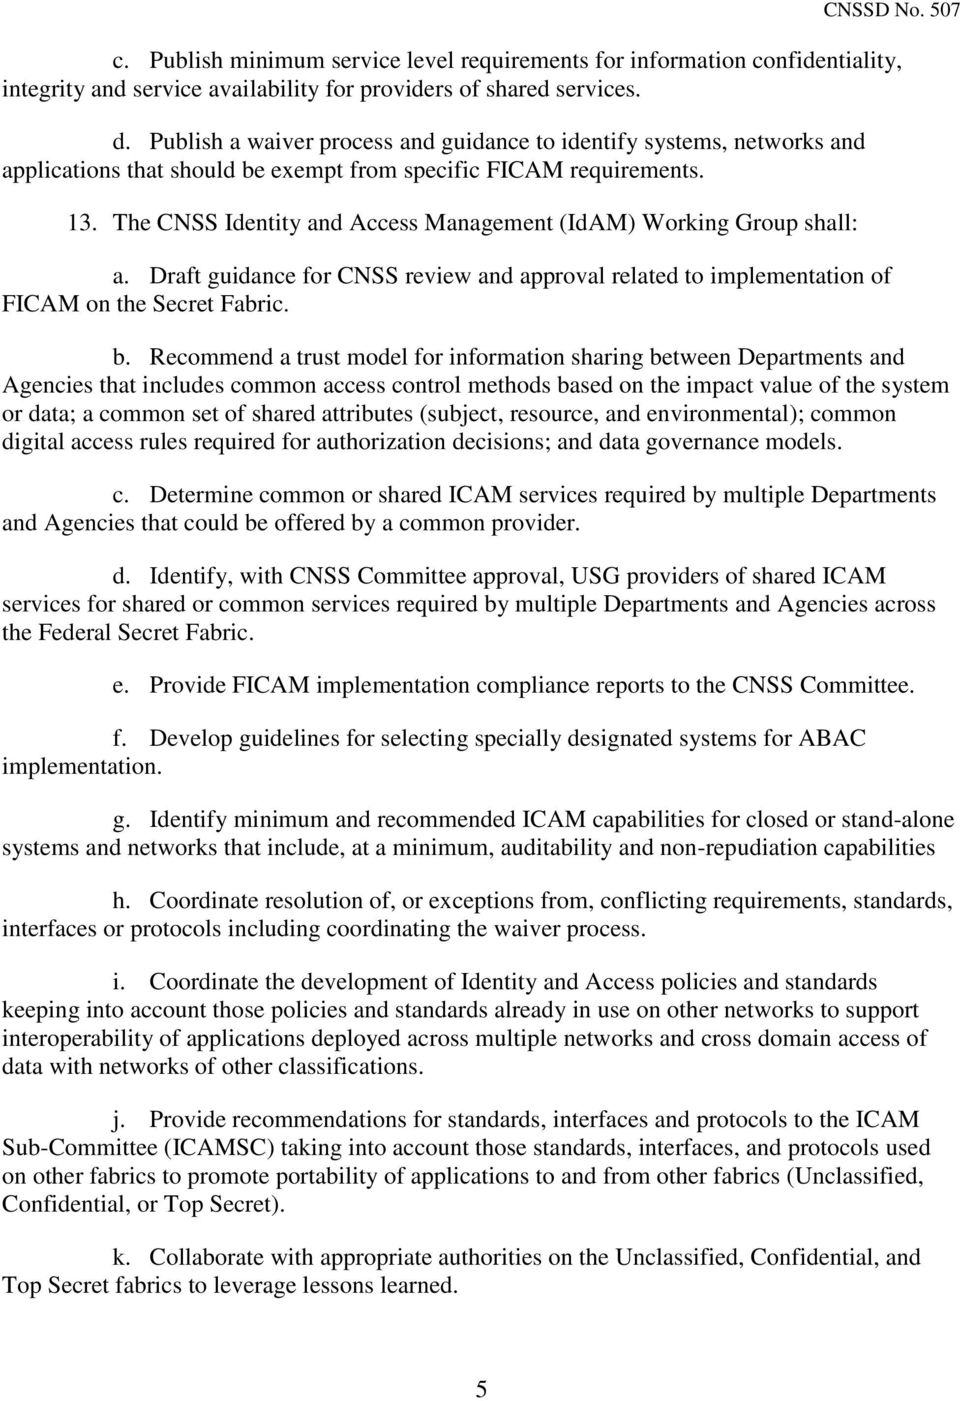 The CNSS Identity and Access Management (IdAM) Working Group shall: a. Draft guidance for CNSS review and approval related to implementation of FICAM on the Secret Fabric. b.